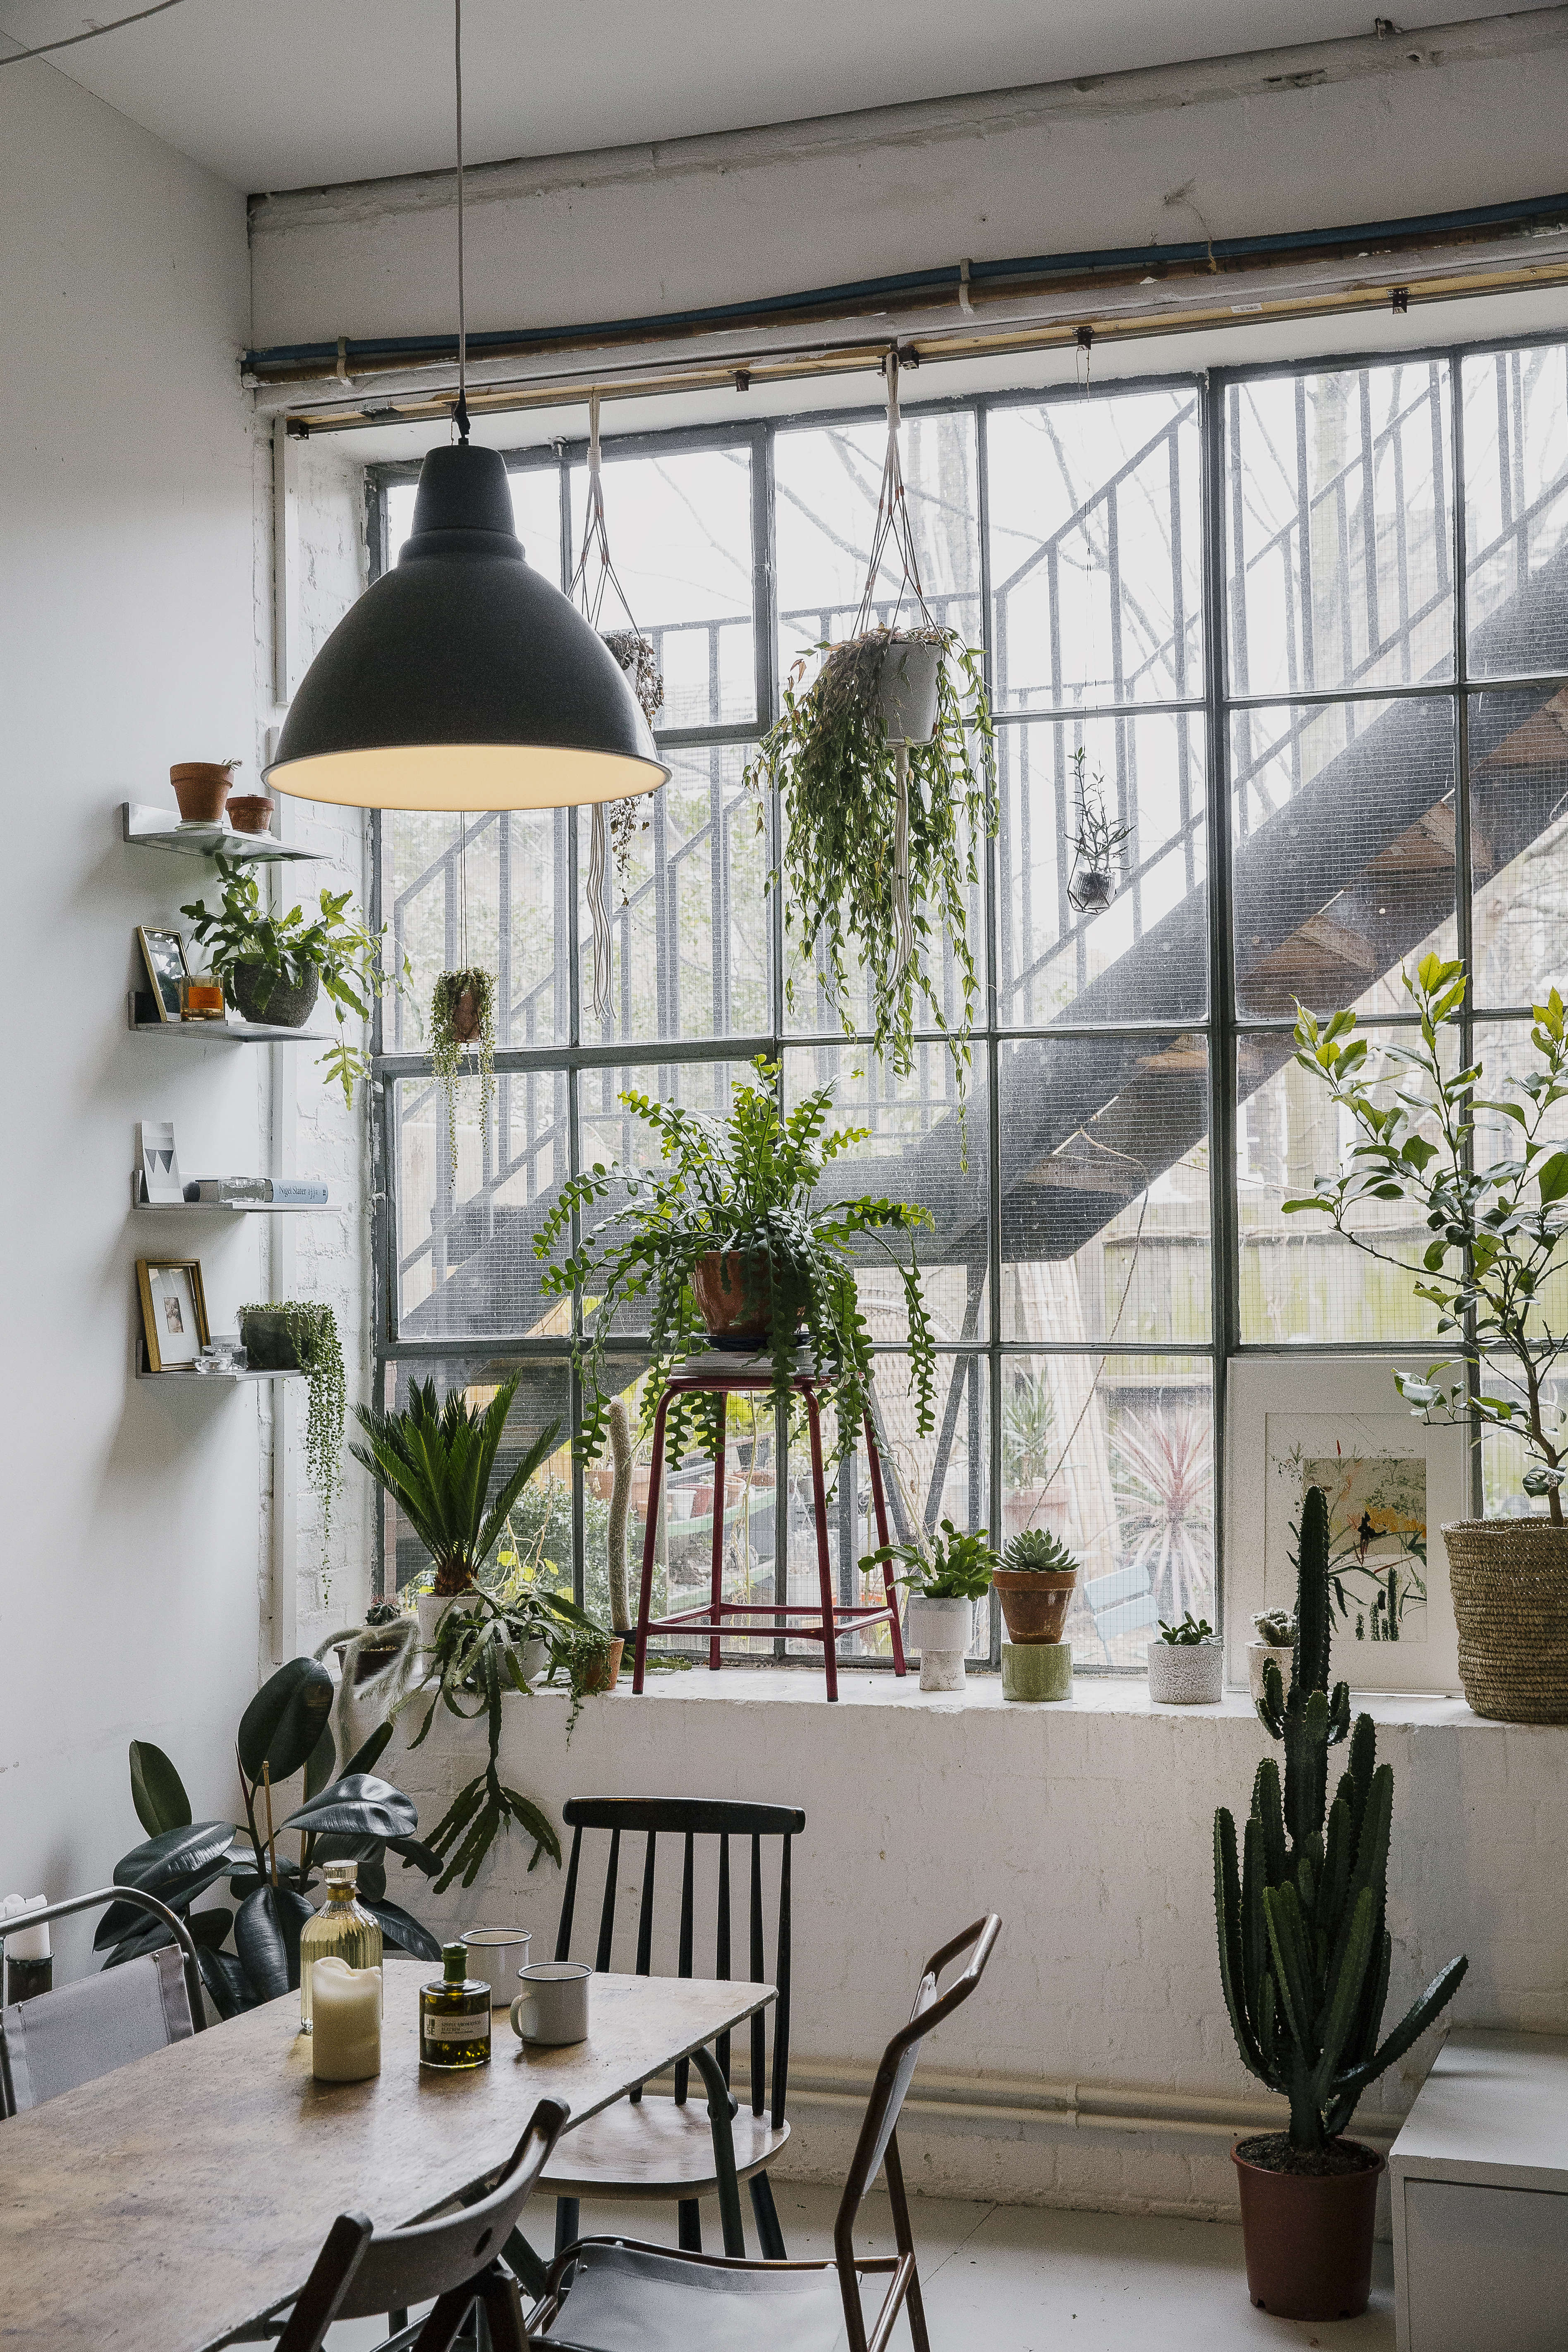 Above the authors originally met at university before starting out as a print designer and set designer respectively but their mutual love of plants